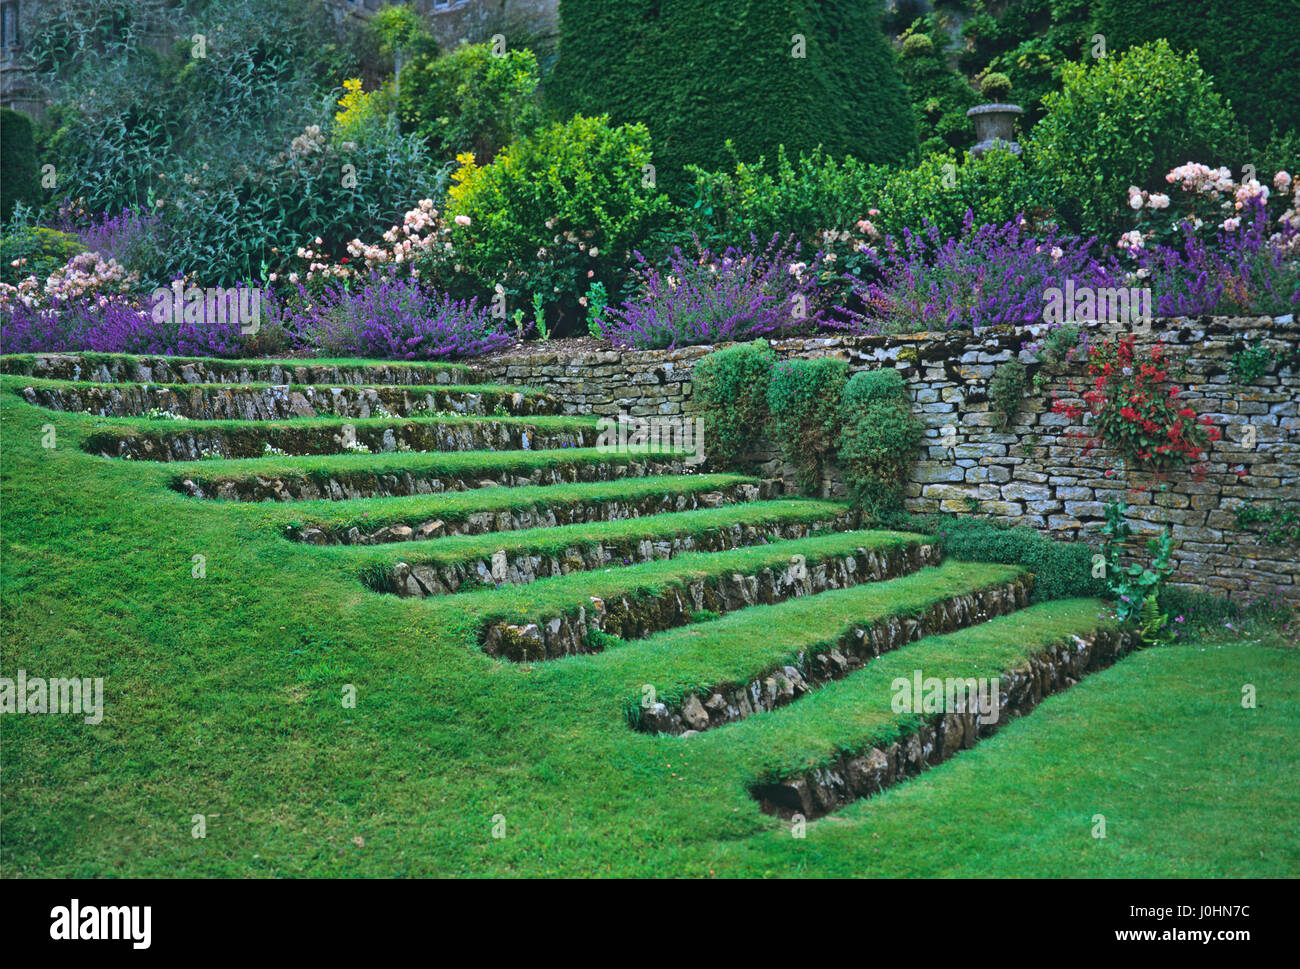 Grass steps with a border of flowers growing along the terrace in the south lawn at Misarden Park - Stock Image